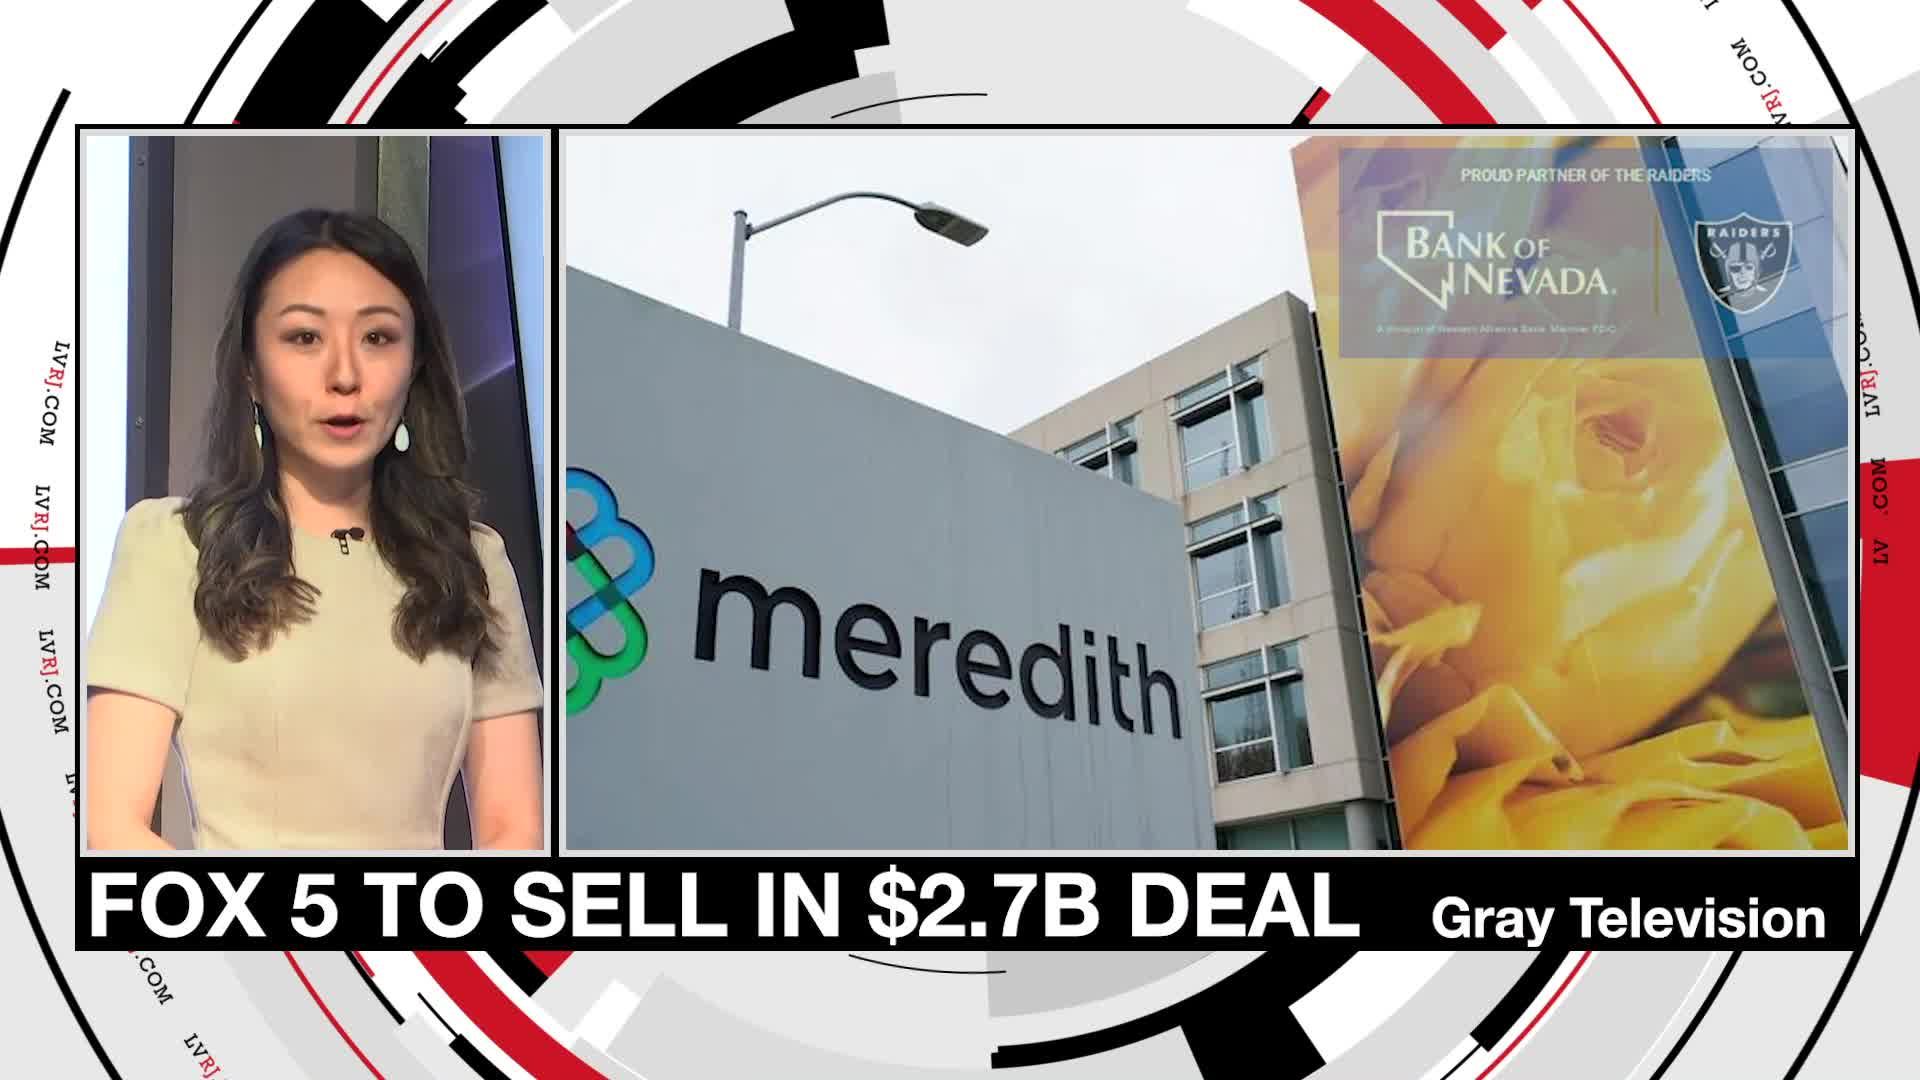 7@7PM FOX 5 to Sell in $2.7B Deal